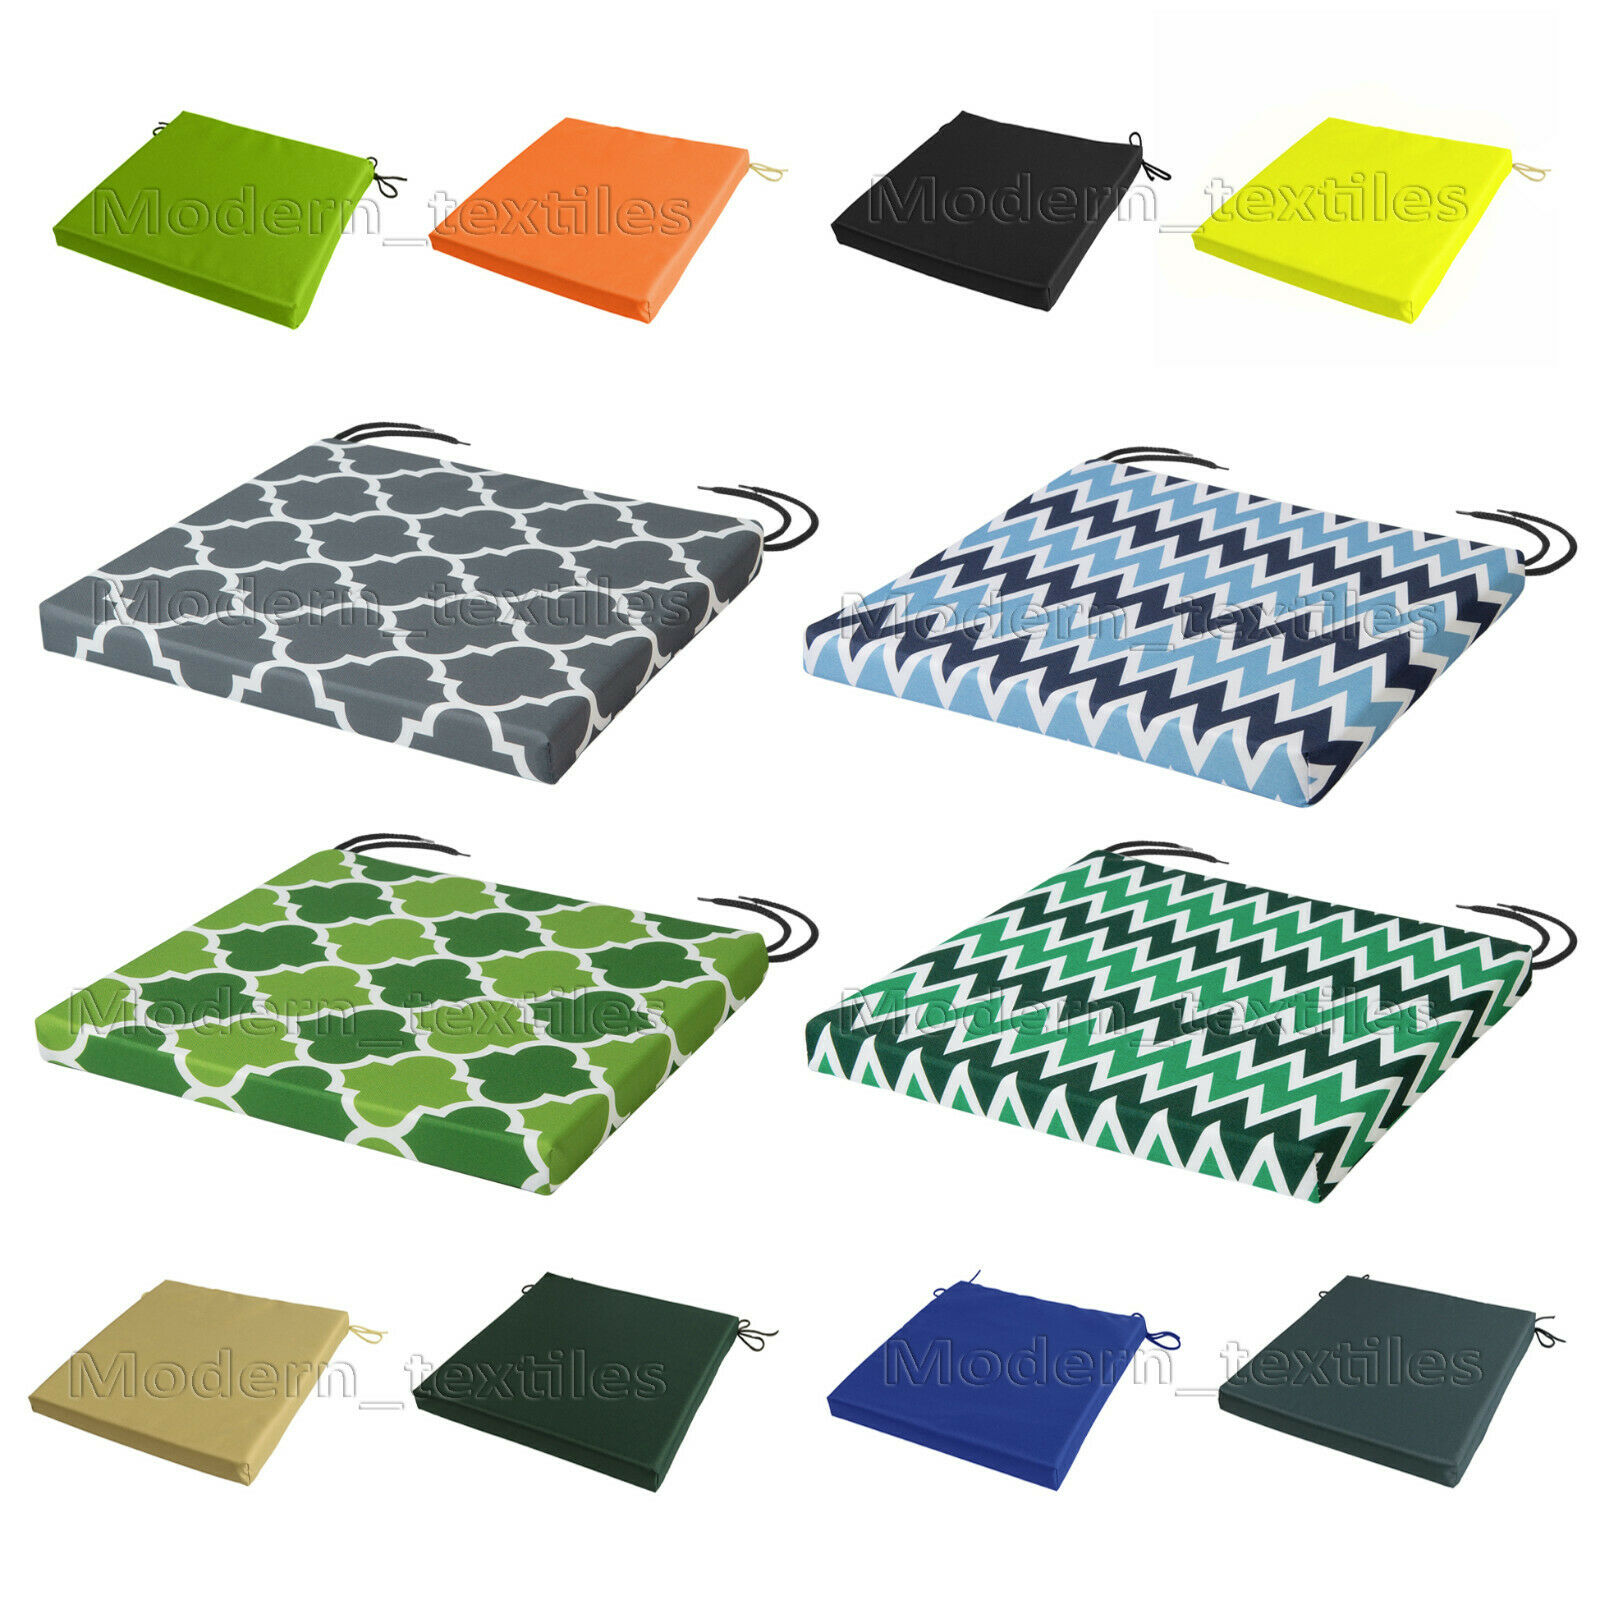 Waterproof chair cushion seat pads removable cover patio for Garden furniture seat cushion covers